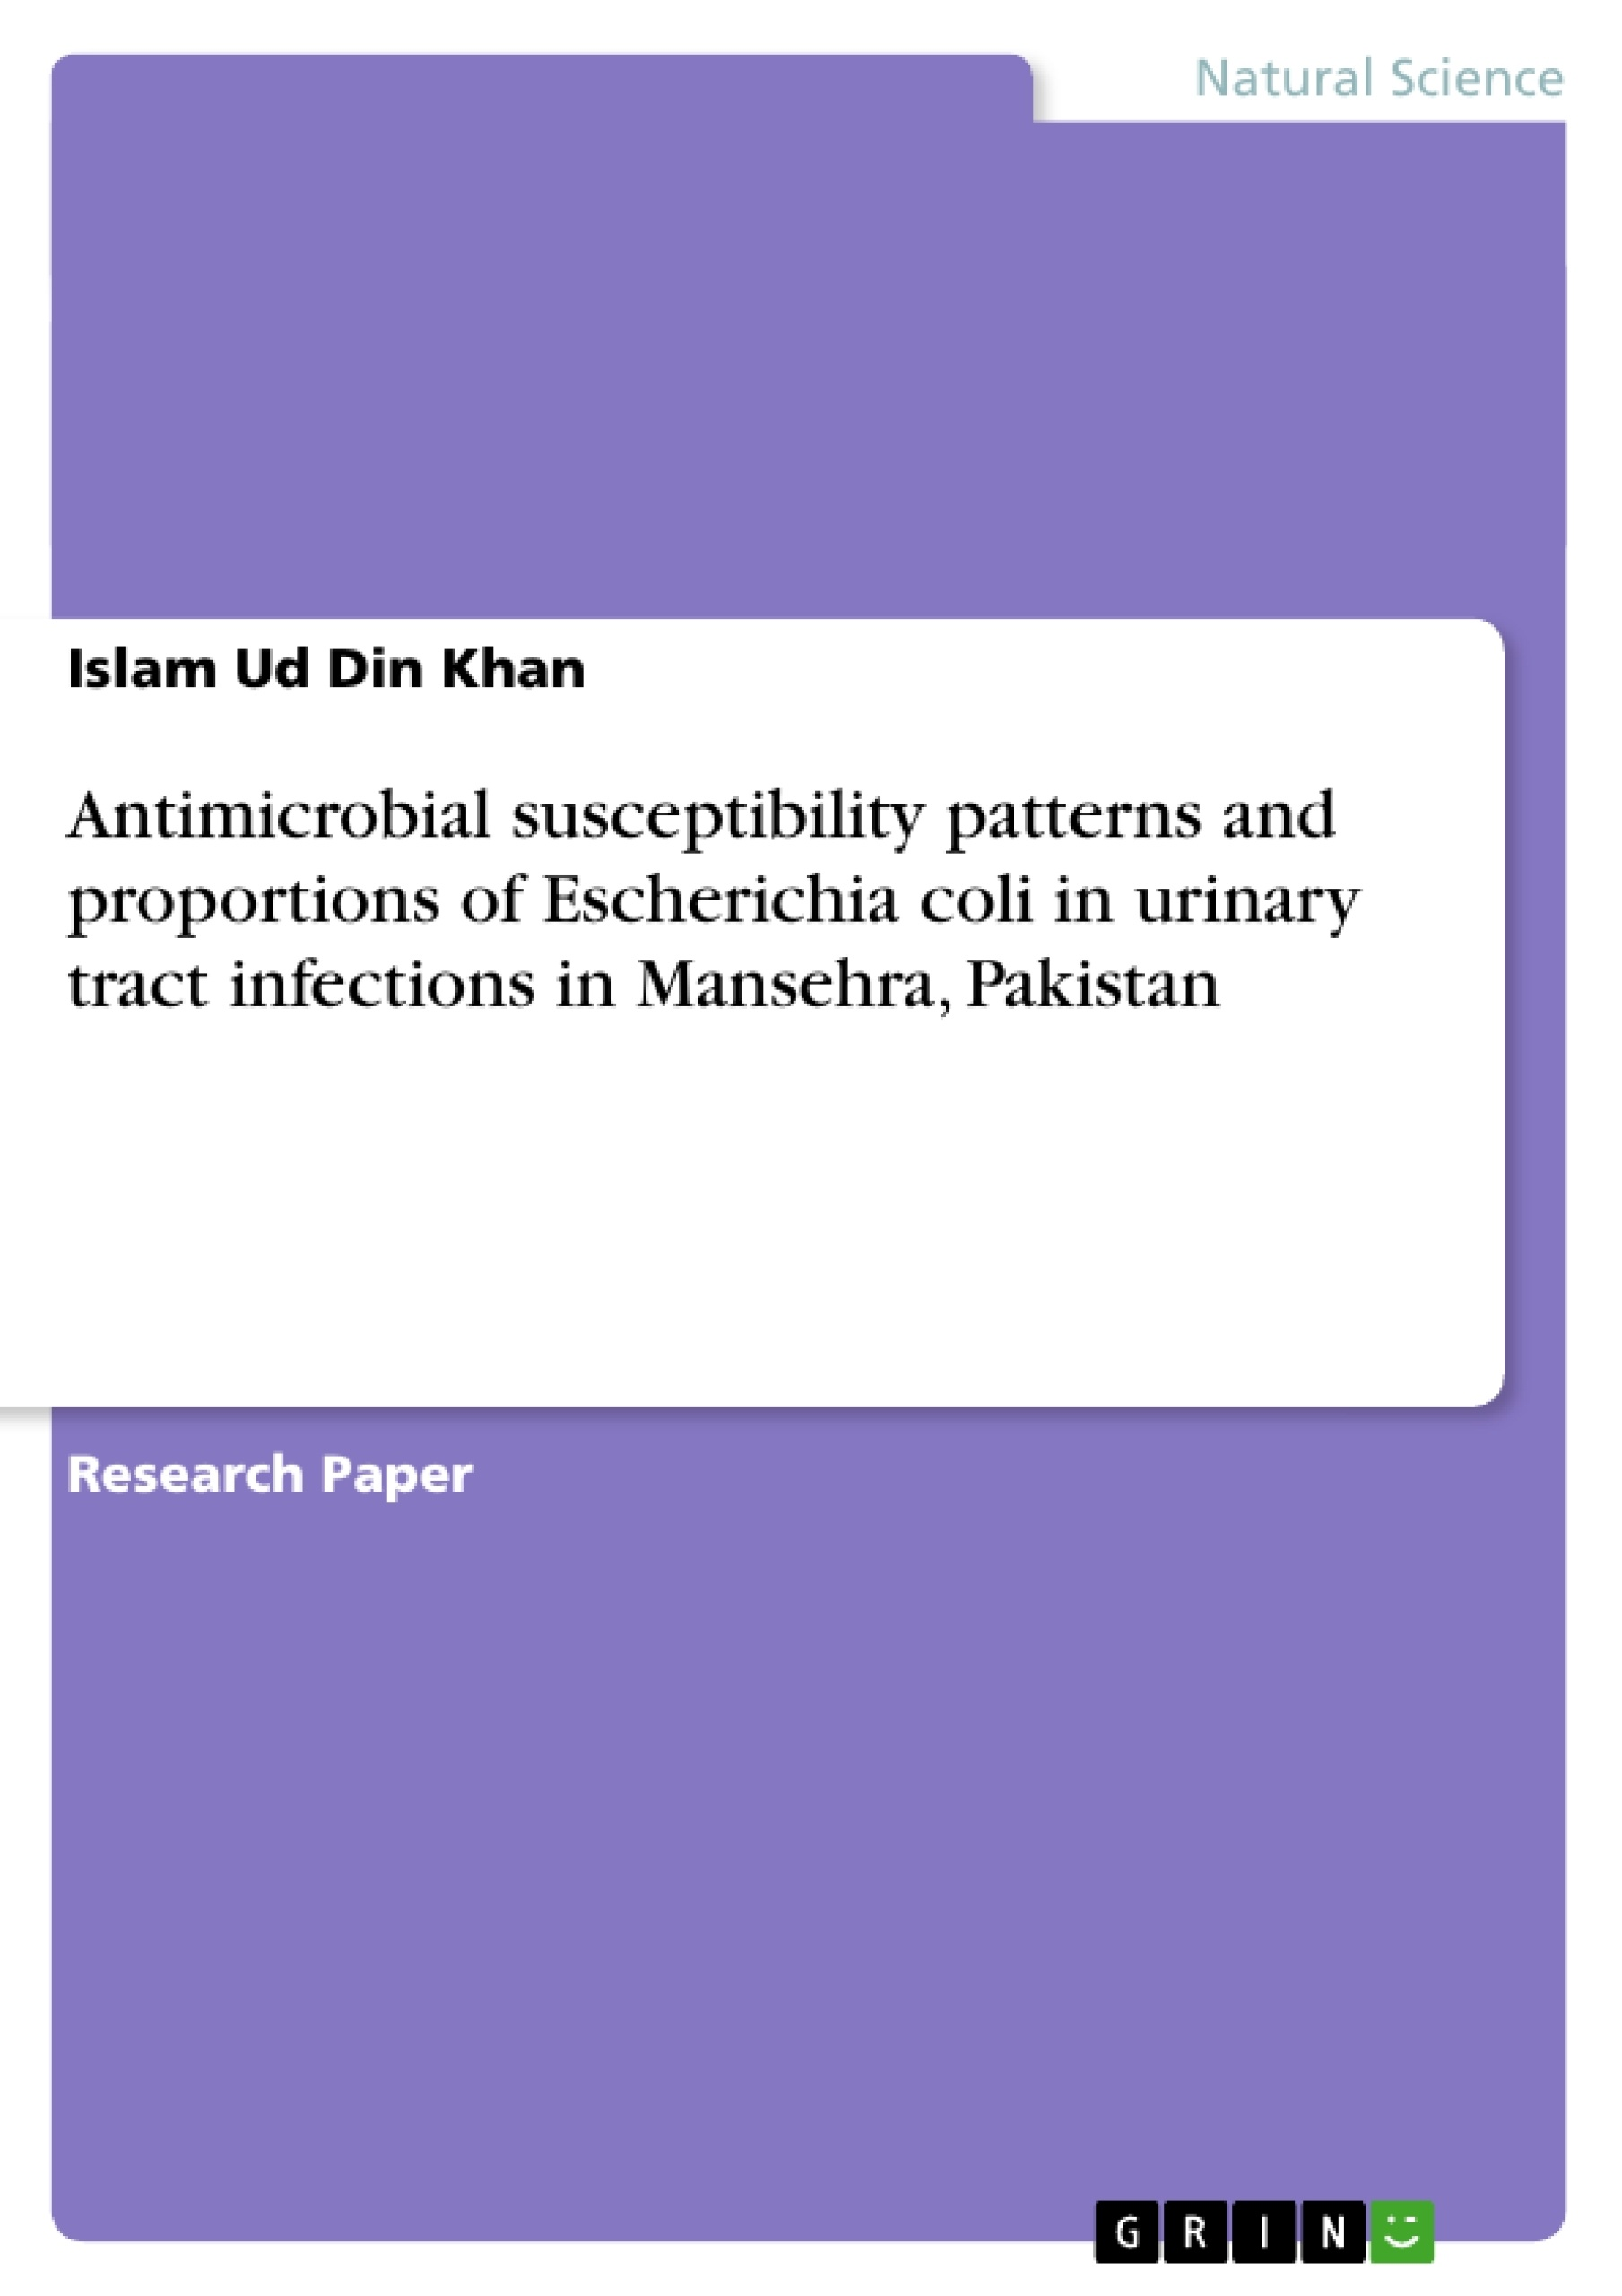 Title: Antimicrobial susceptibility patterns and proportions of Escherichia coli in urinary tract infections in Mansehra, Pakistan